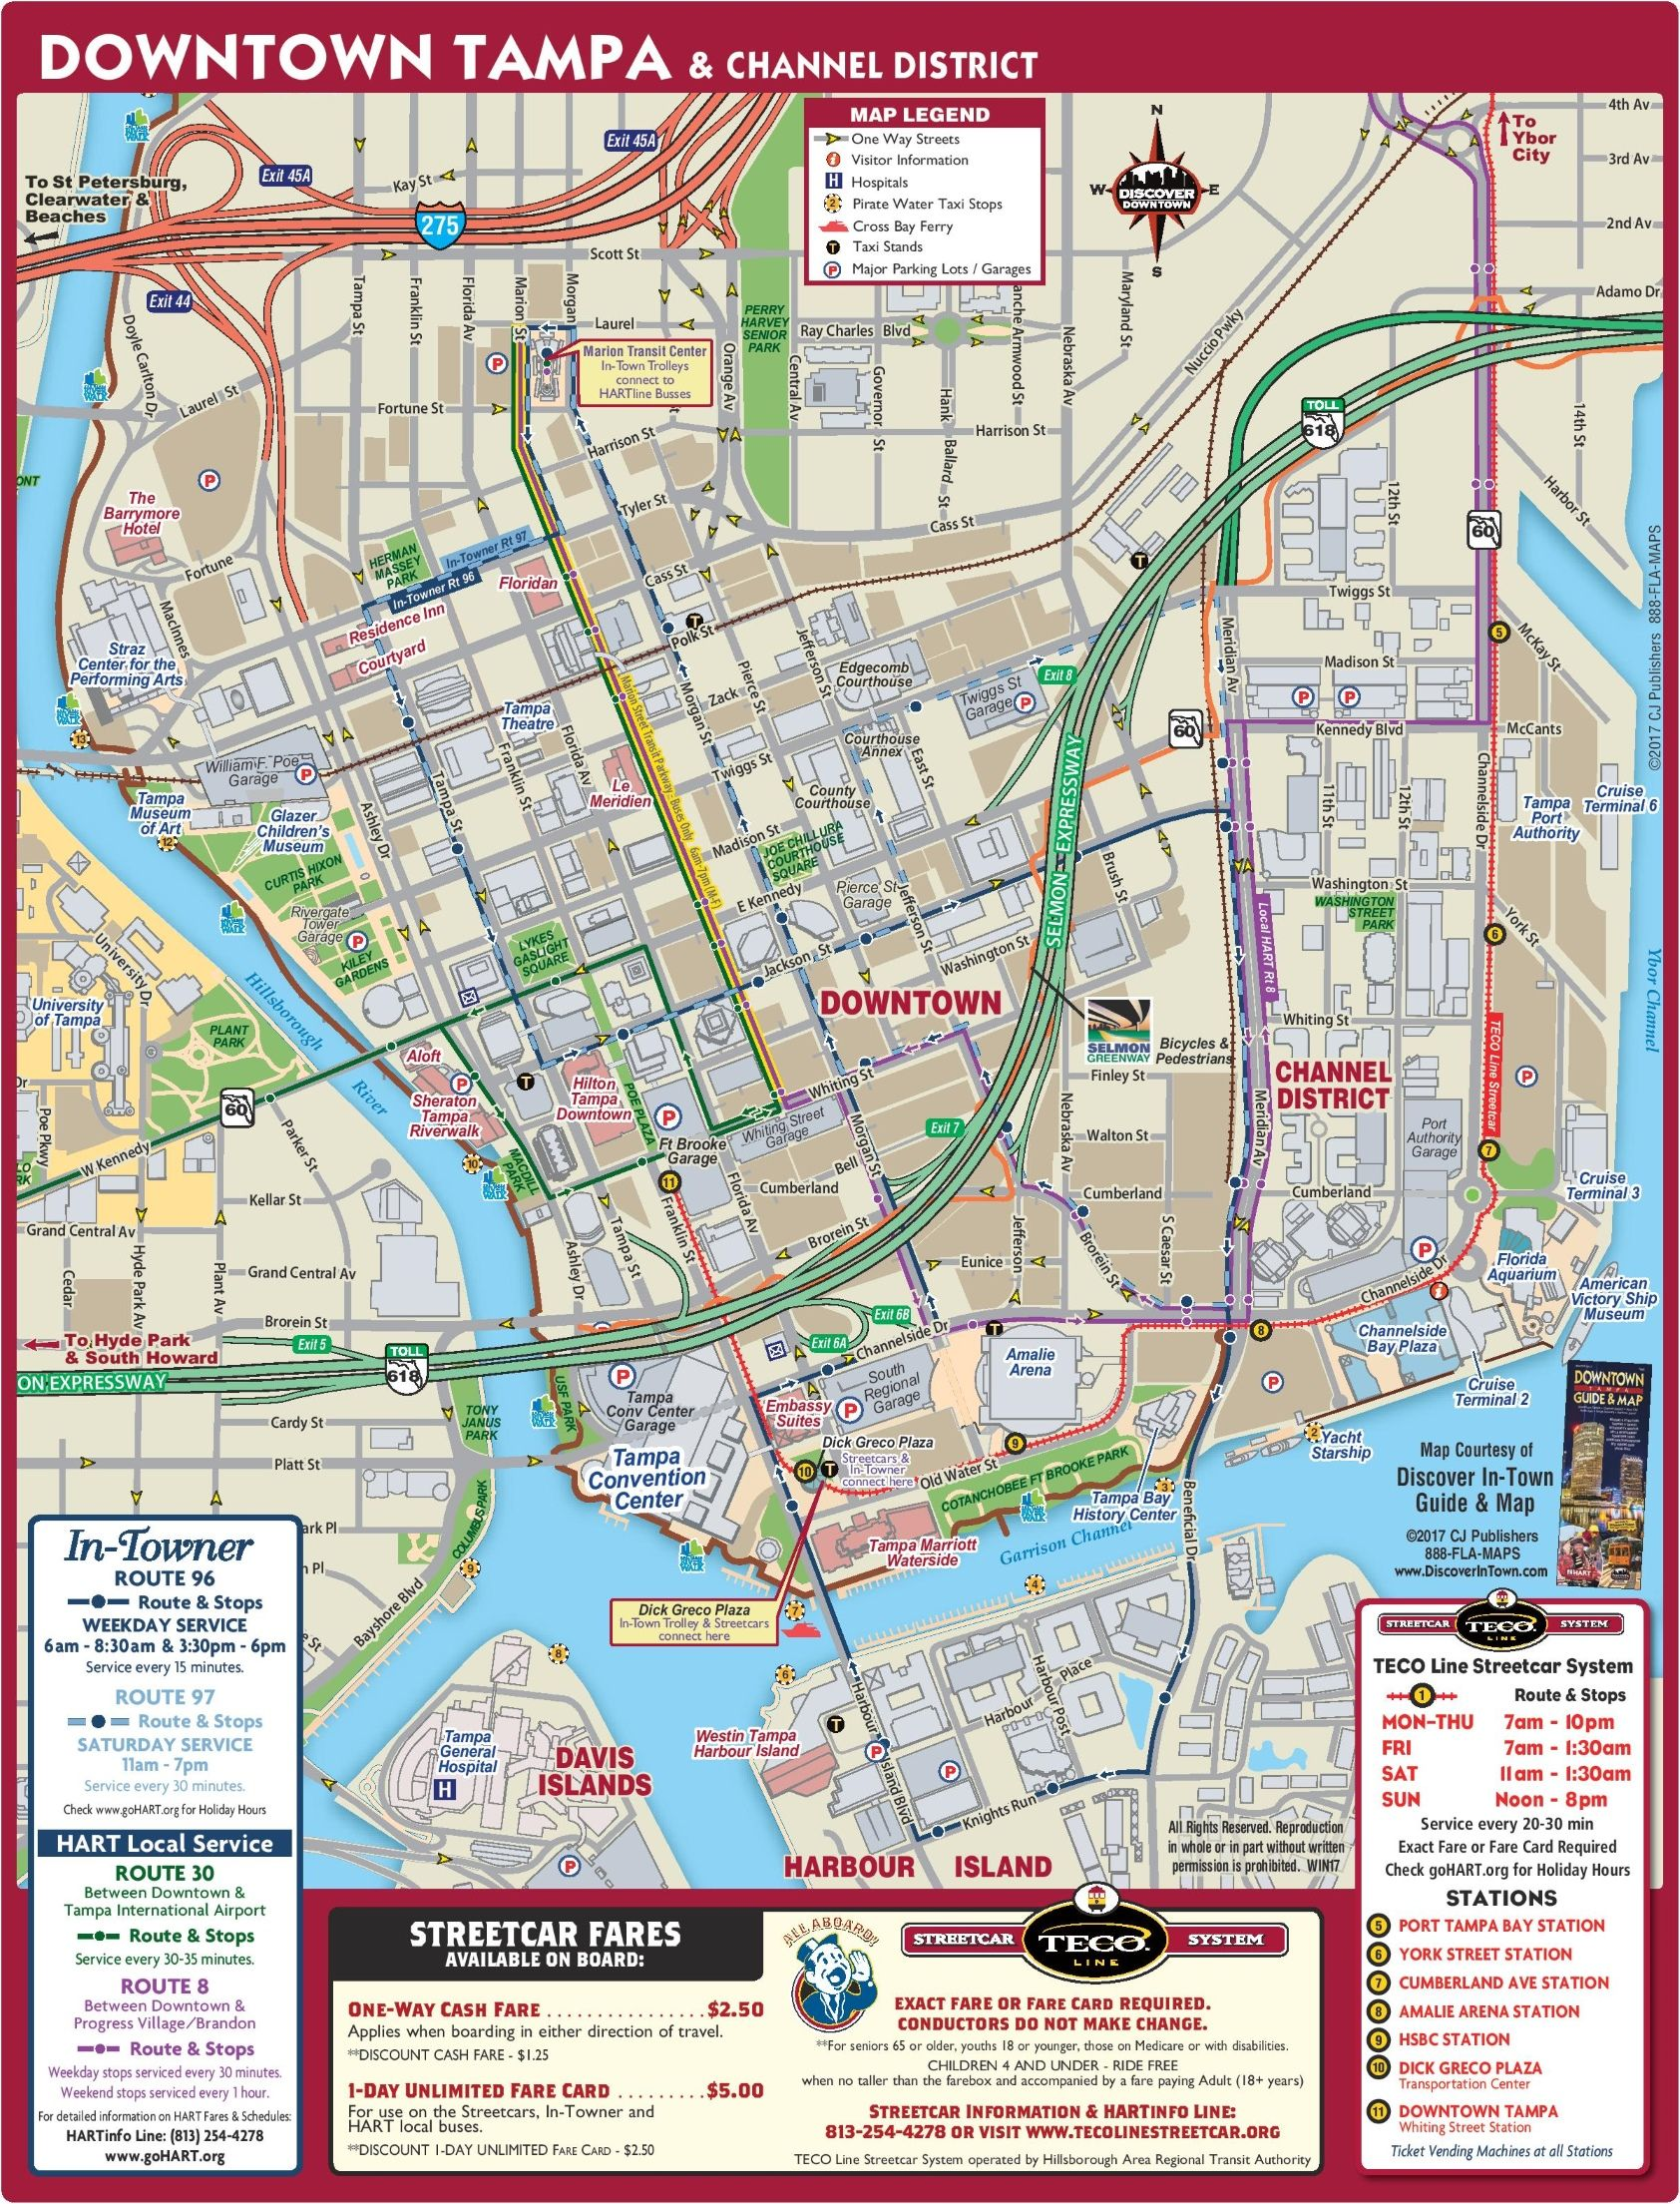 tampa map - Google Search | Tampa downtown, Tampa map, Map